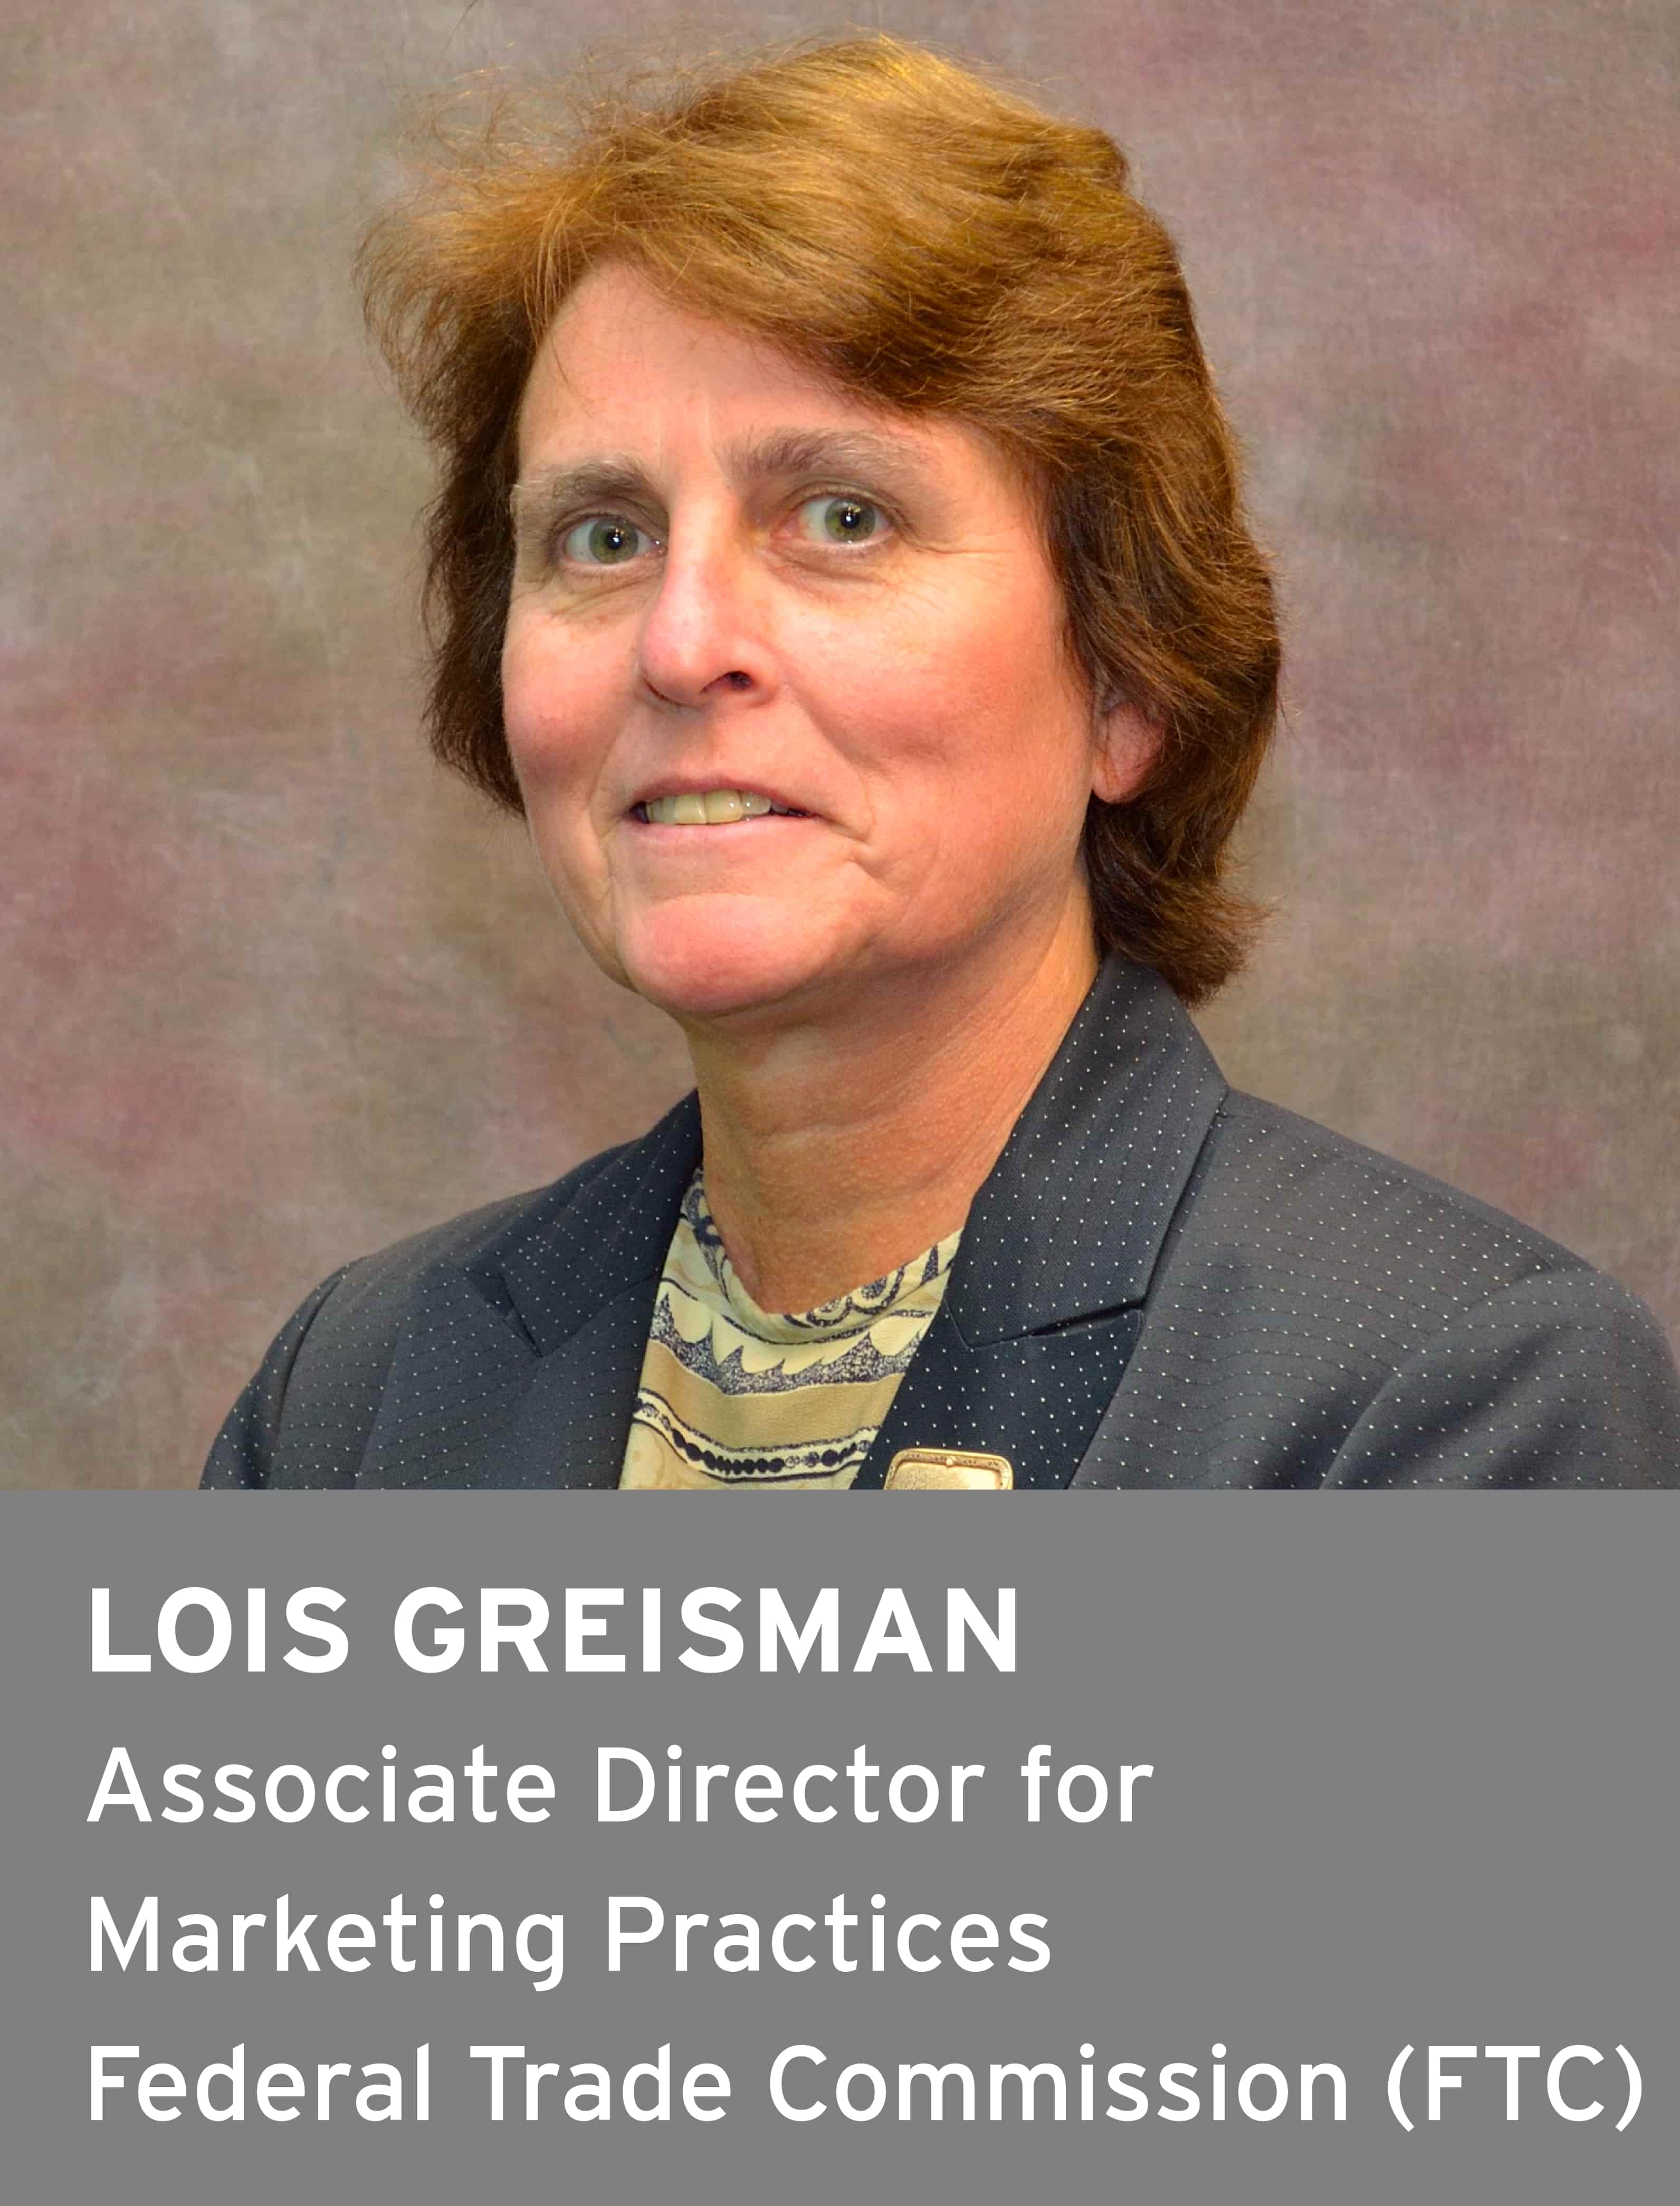 Lois Greisman, Associate Director for Marketing Practices, Federal Trade Commission (FTC)